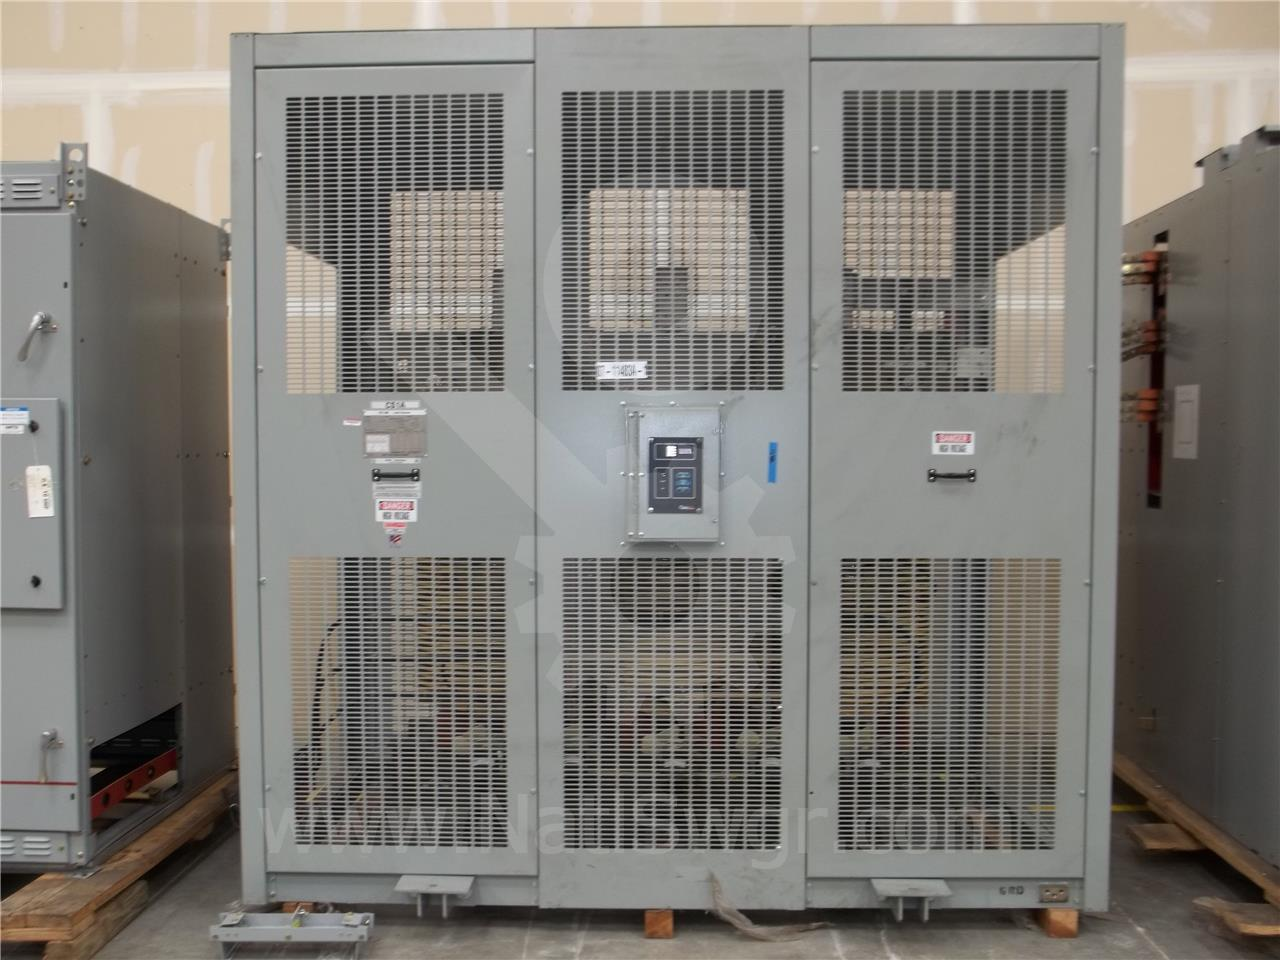 Westinghouse / Cutler Hammer CH 3000/4000KVA 13200:480V DRY 3PH POWER TRANSFORMER UNUSED SURPLUS